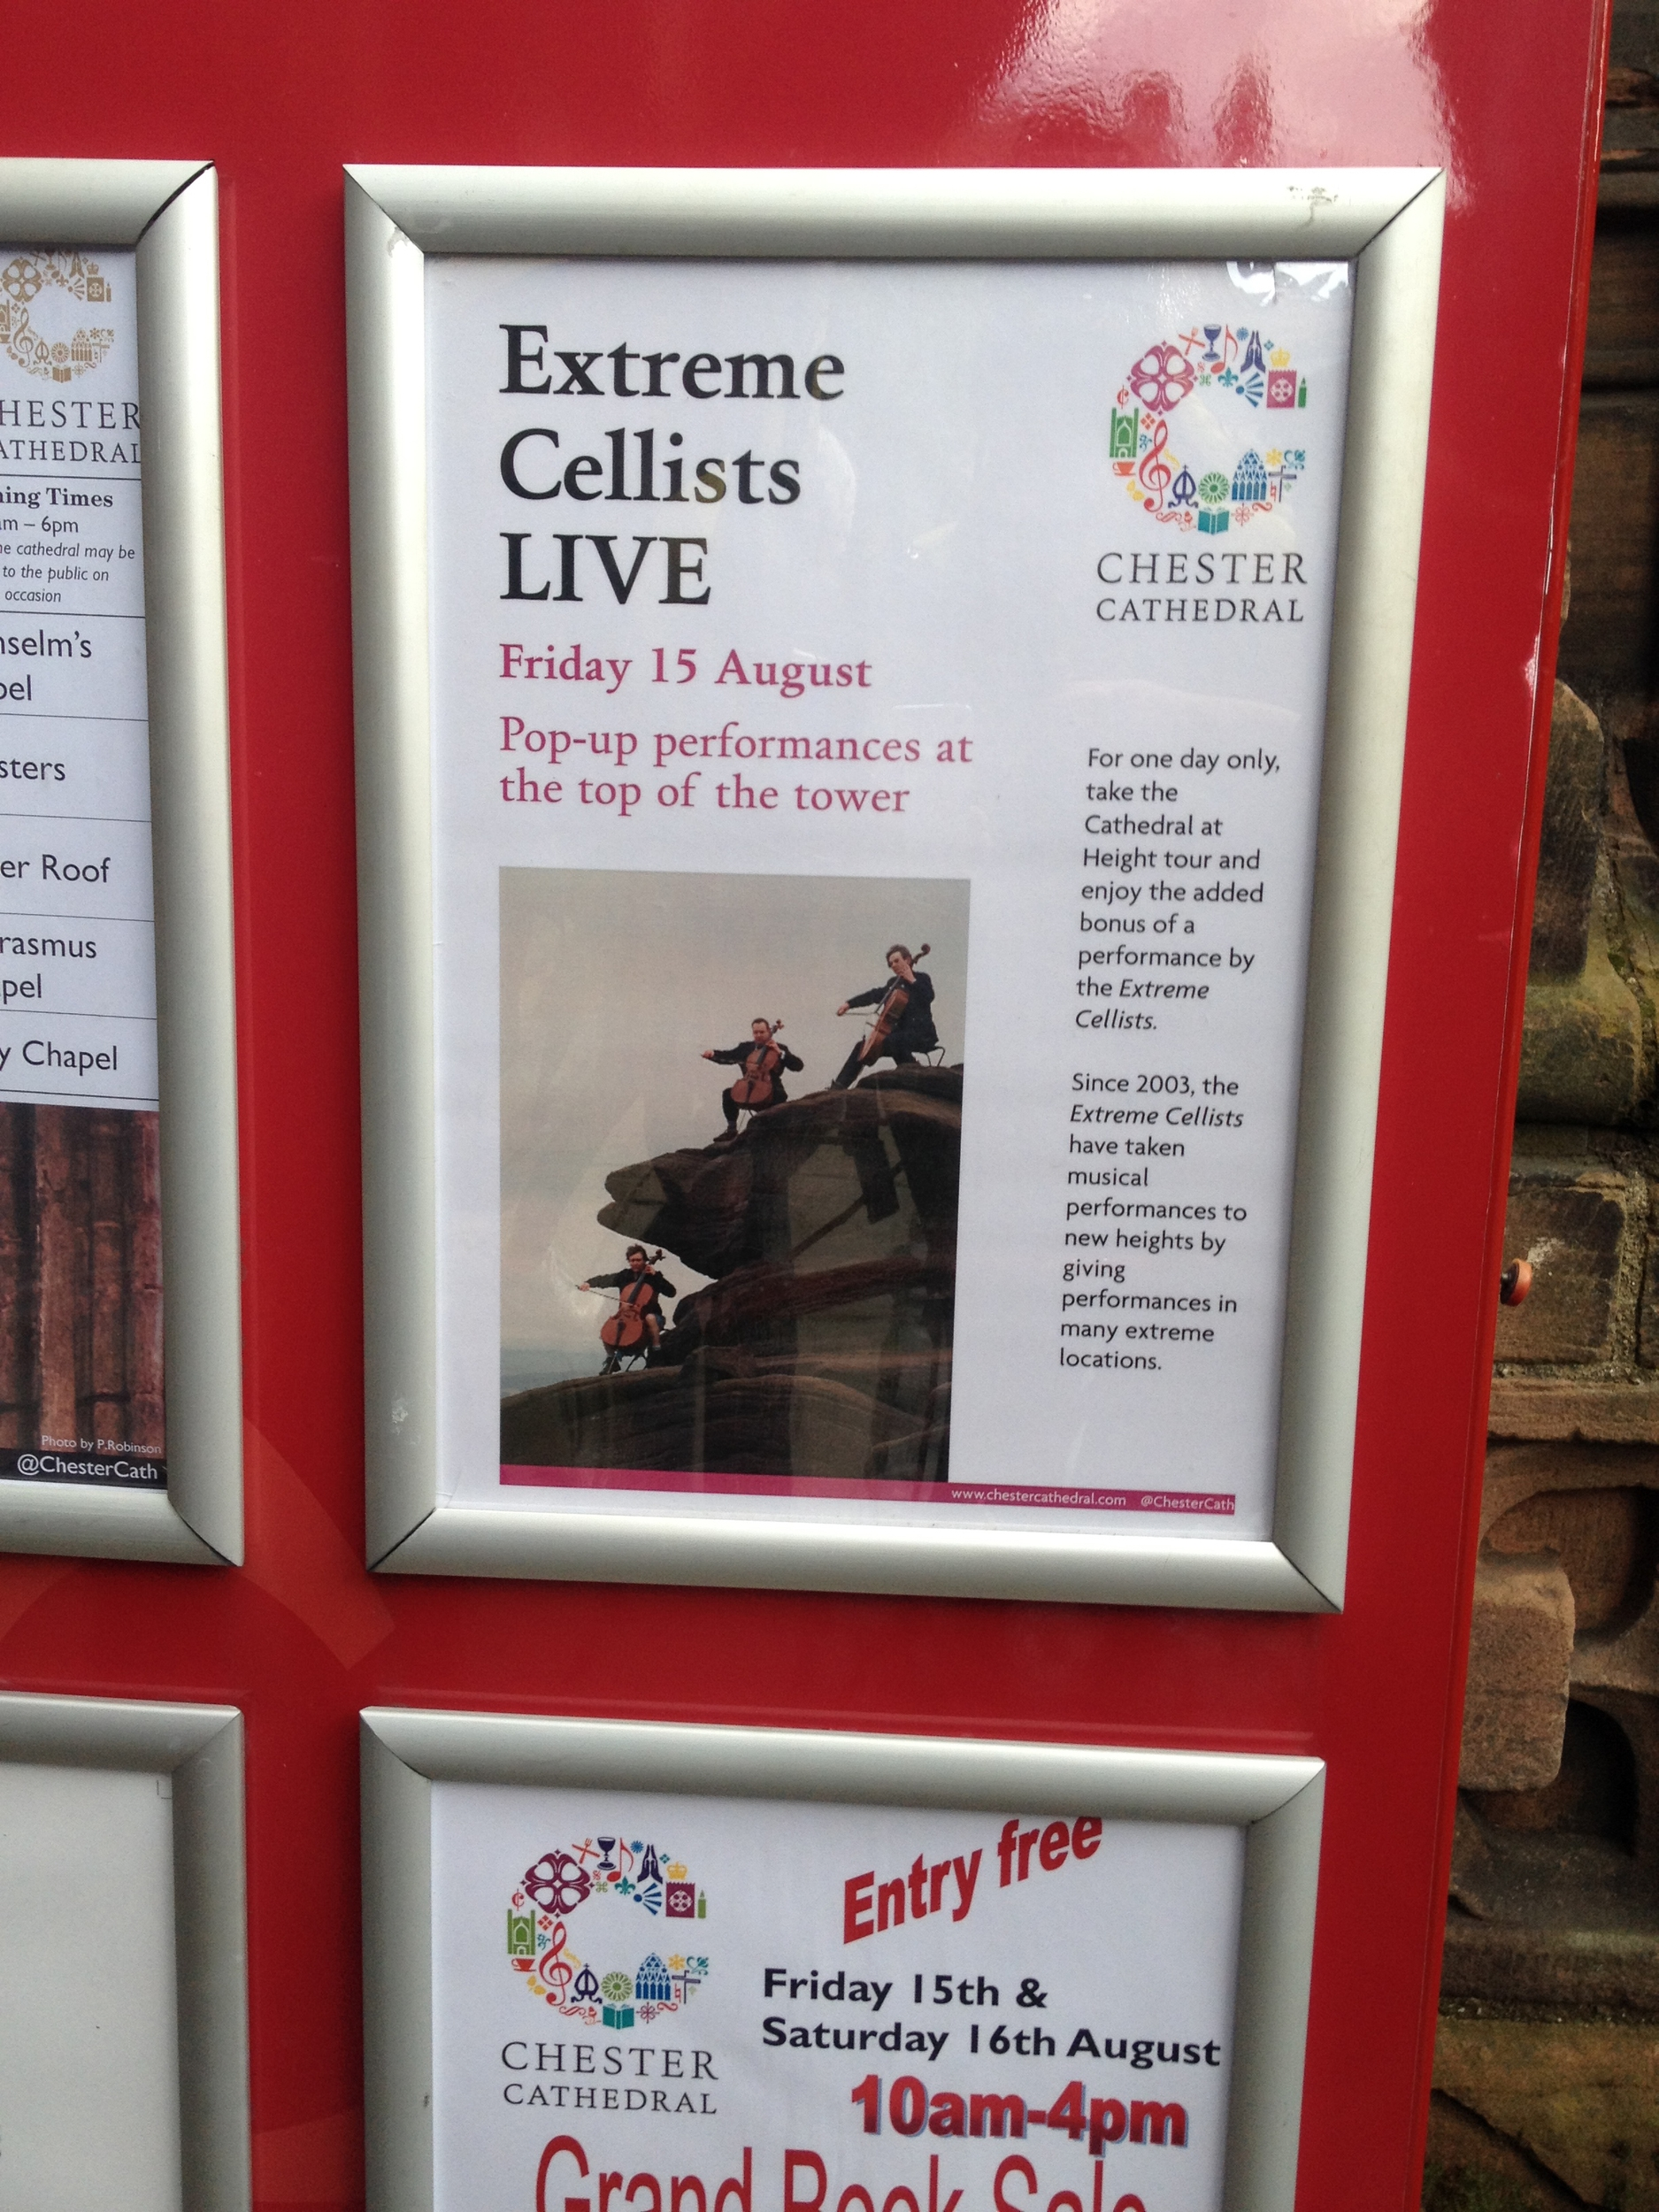 Being advertised at Chester Cathedral...